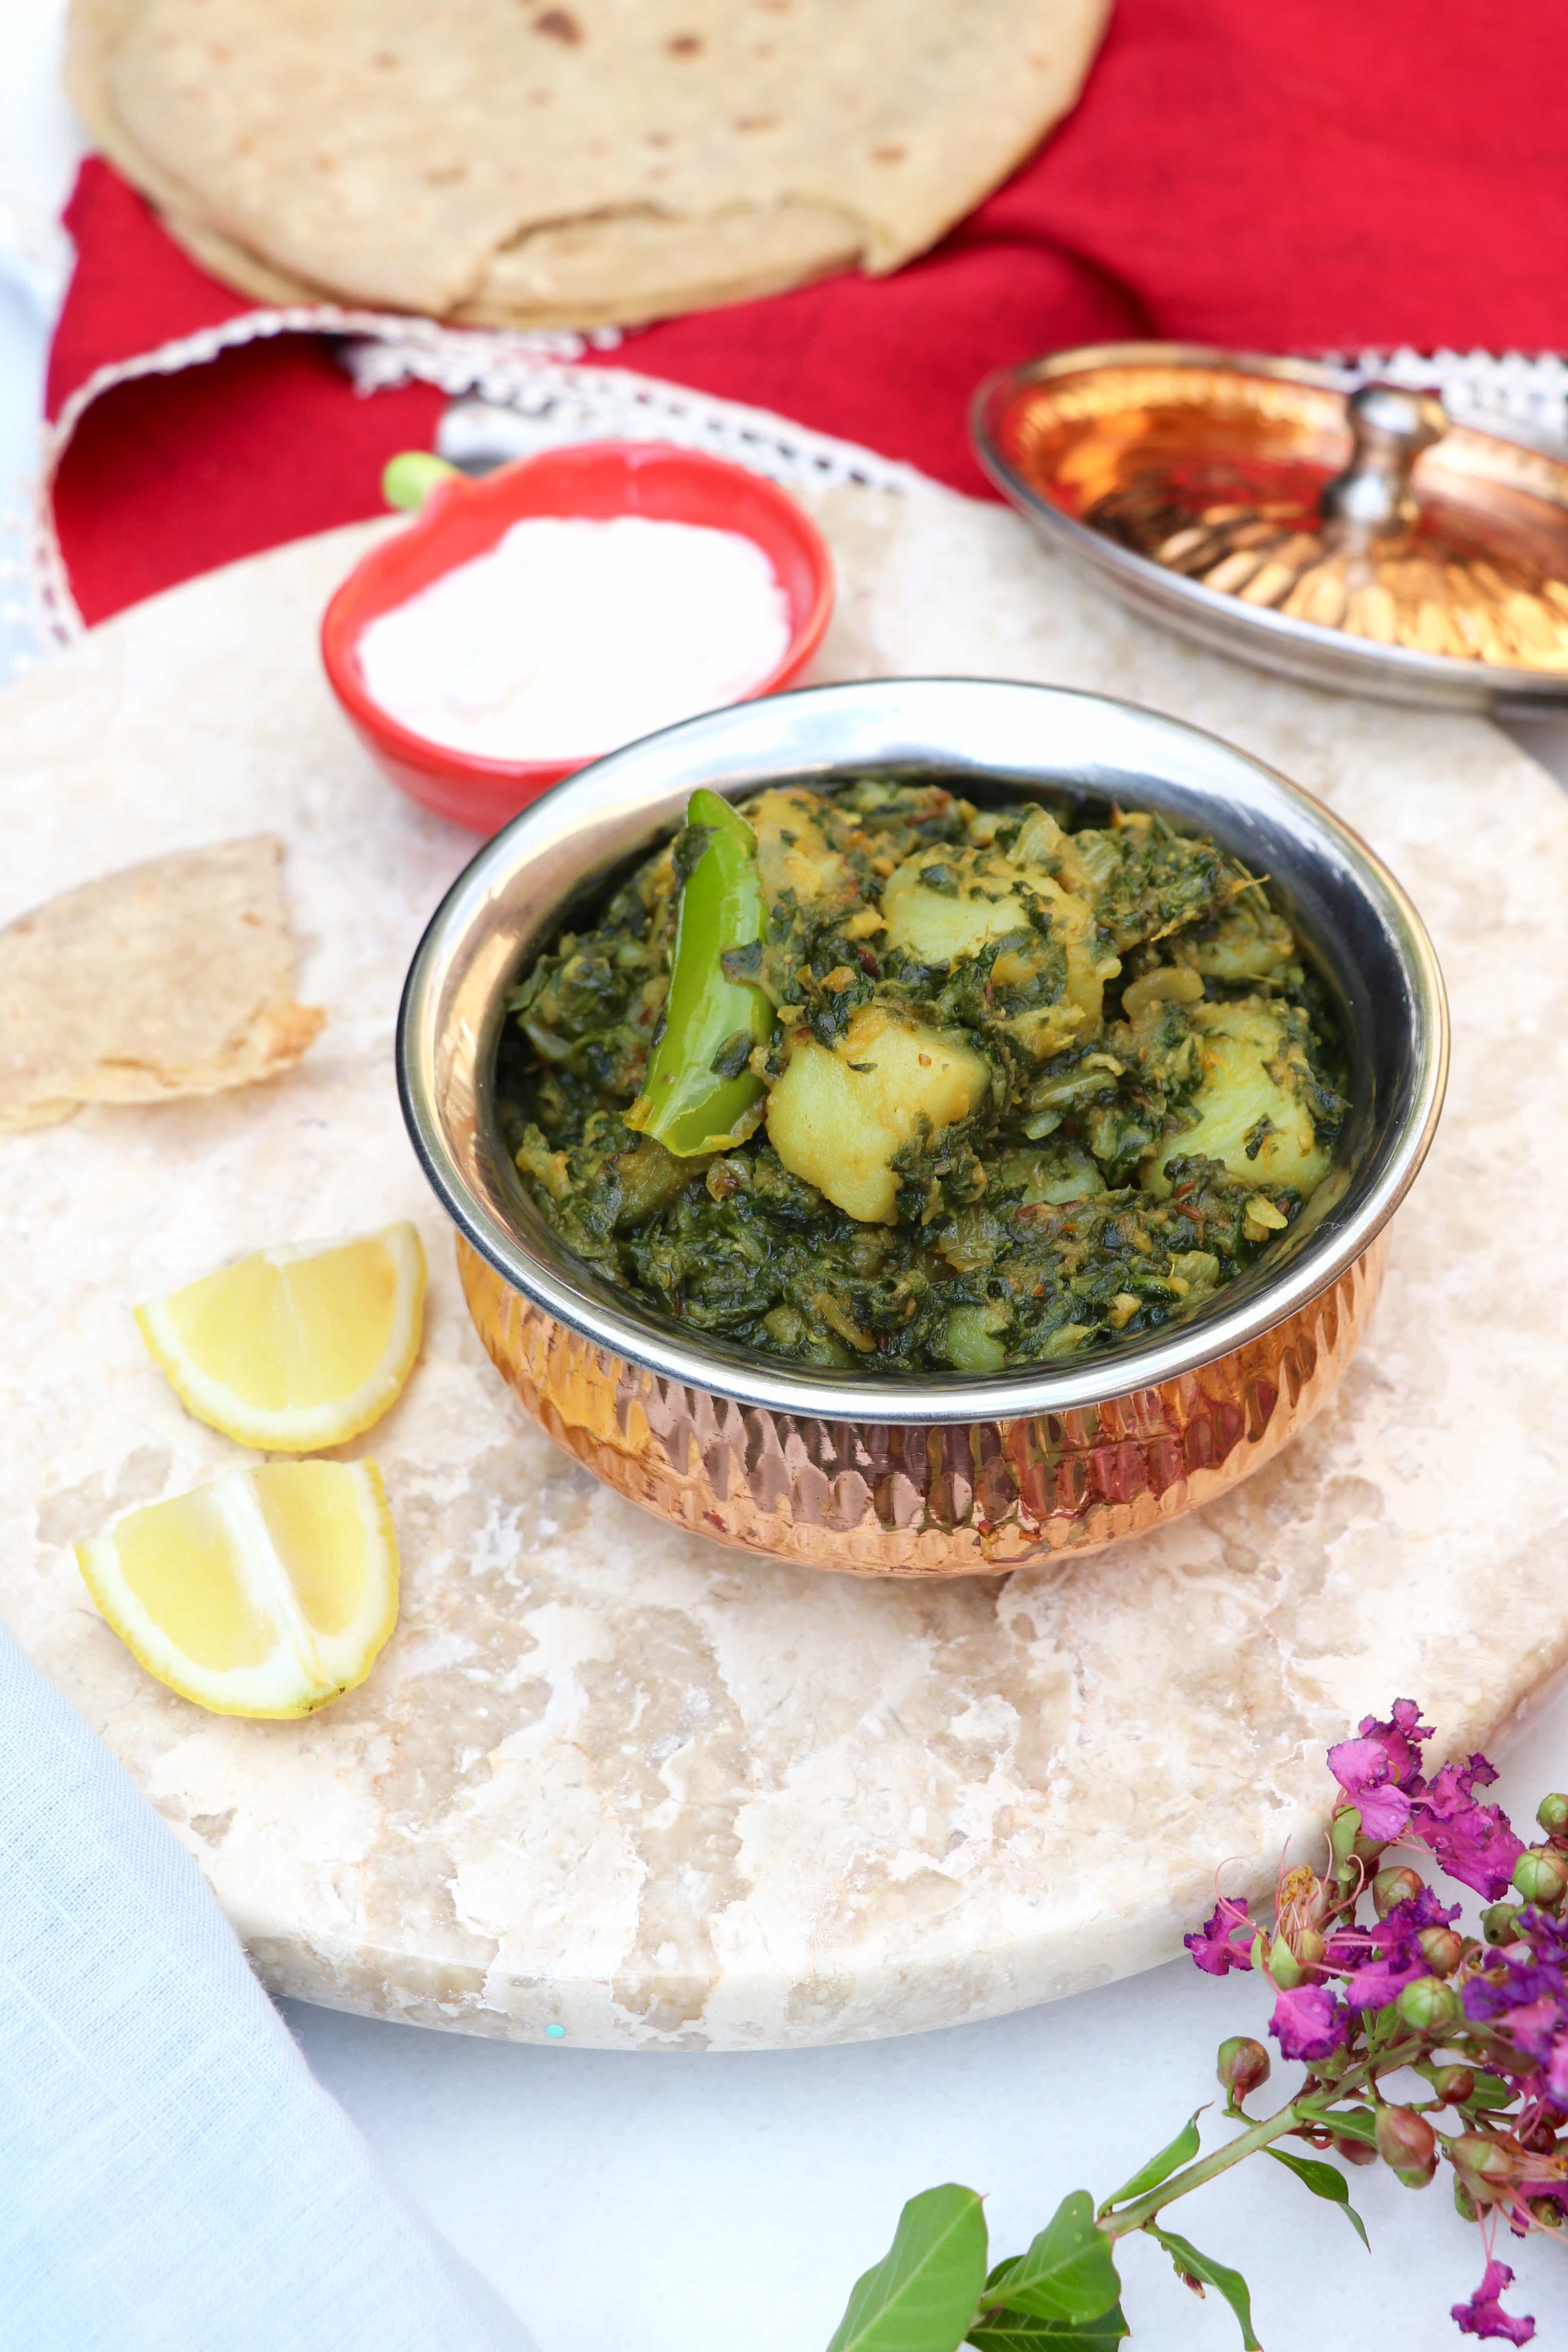 This quick and easy Spinach & Potato (Aloo Palak) curry recipe is healthy, full of authentic flavor, and naturally vegetarian (or vegan, if you omit the ghee). This curry is unique in that the potatoes boil on the side while you\'re preparing the curry, reducing any extra time to wait on the potatoes.